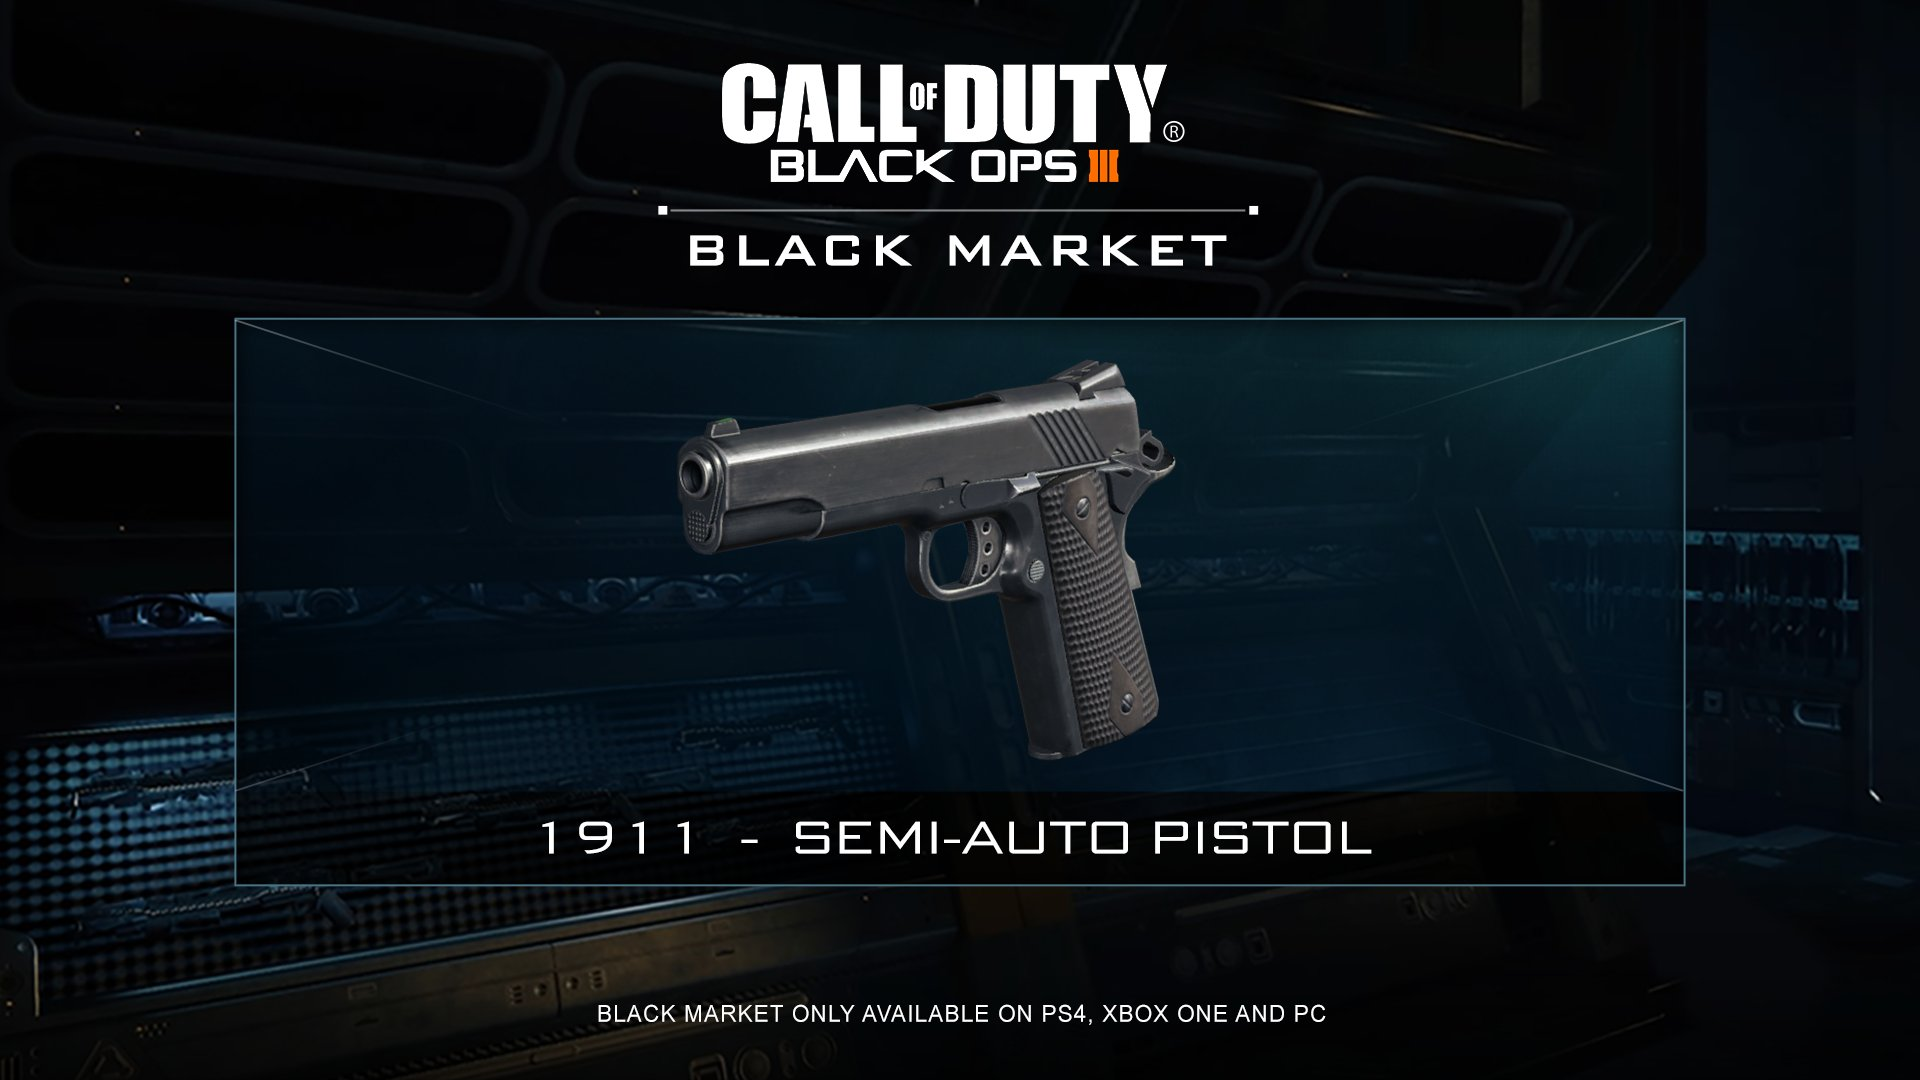 Call Of Duty On Twitter Go Old School With The Classic Ak 74u Smg